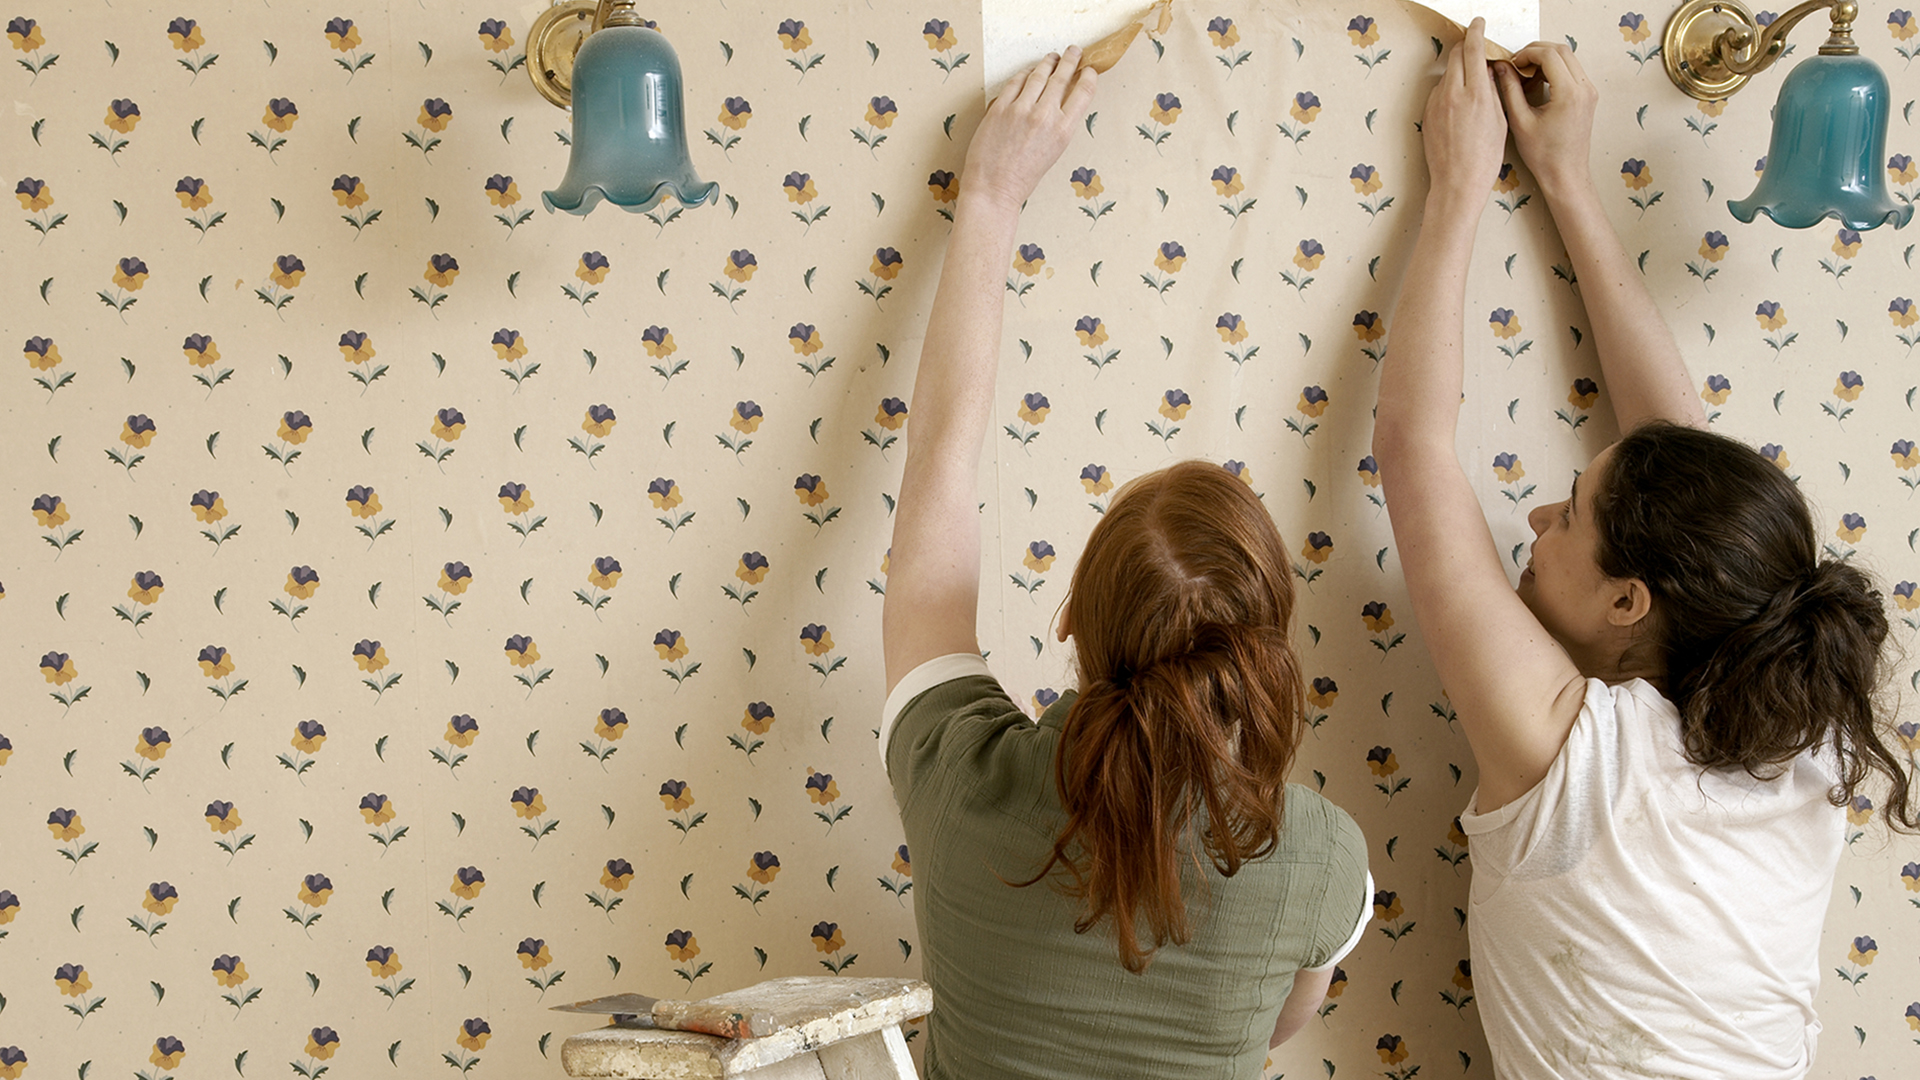 How to remove wallpaper: Easy tips and